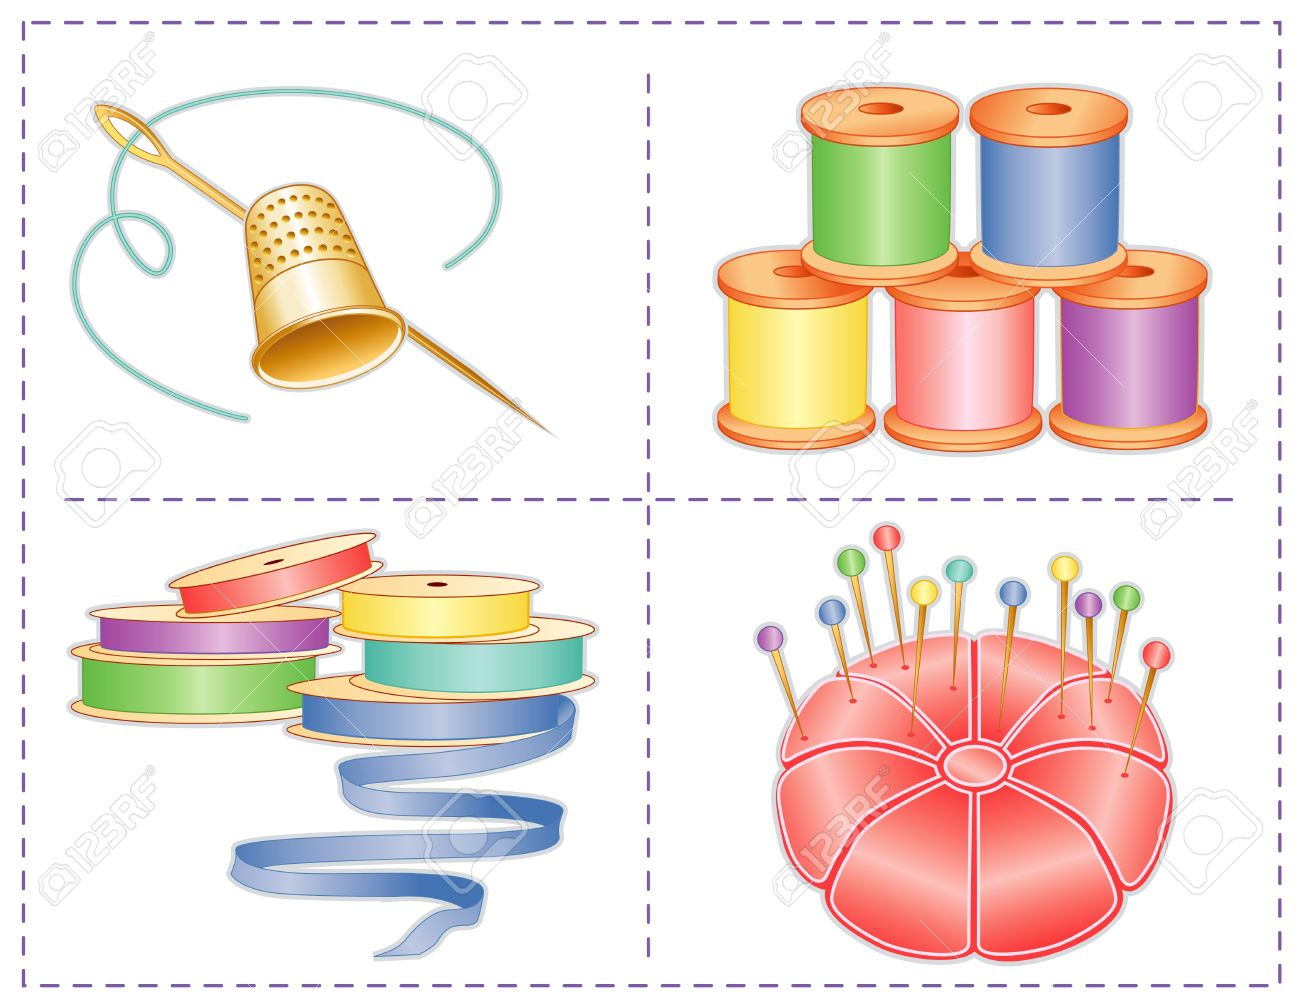 Sewing accessories, pastels, gold thimble, needle, satin pin cushion, straight pins, satin ribbons, spools of thread, isolated on white, for fashion sewing, tailoring, quilting, crafts, needlework, do it yourself projects - 14407807